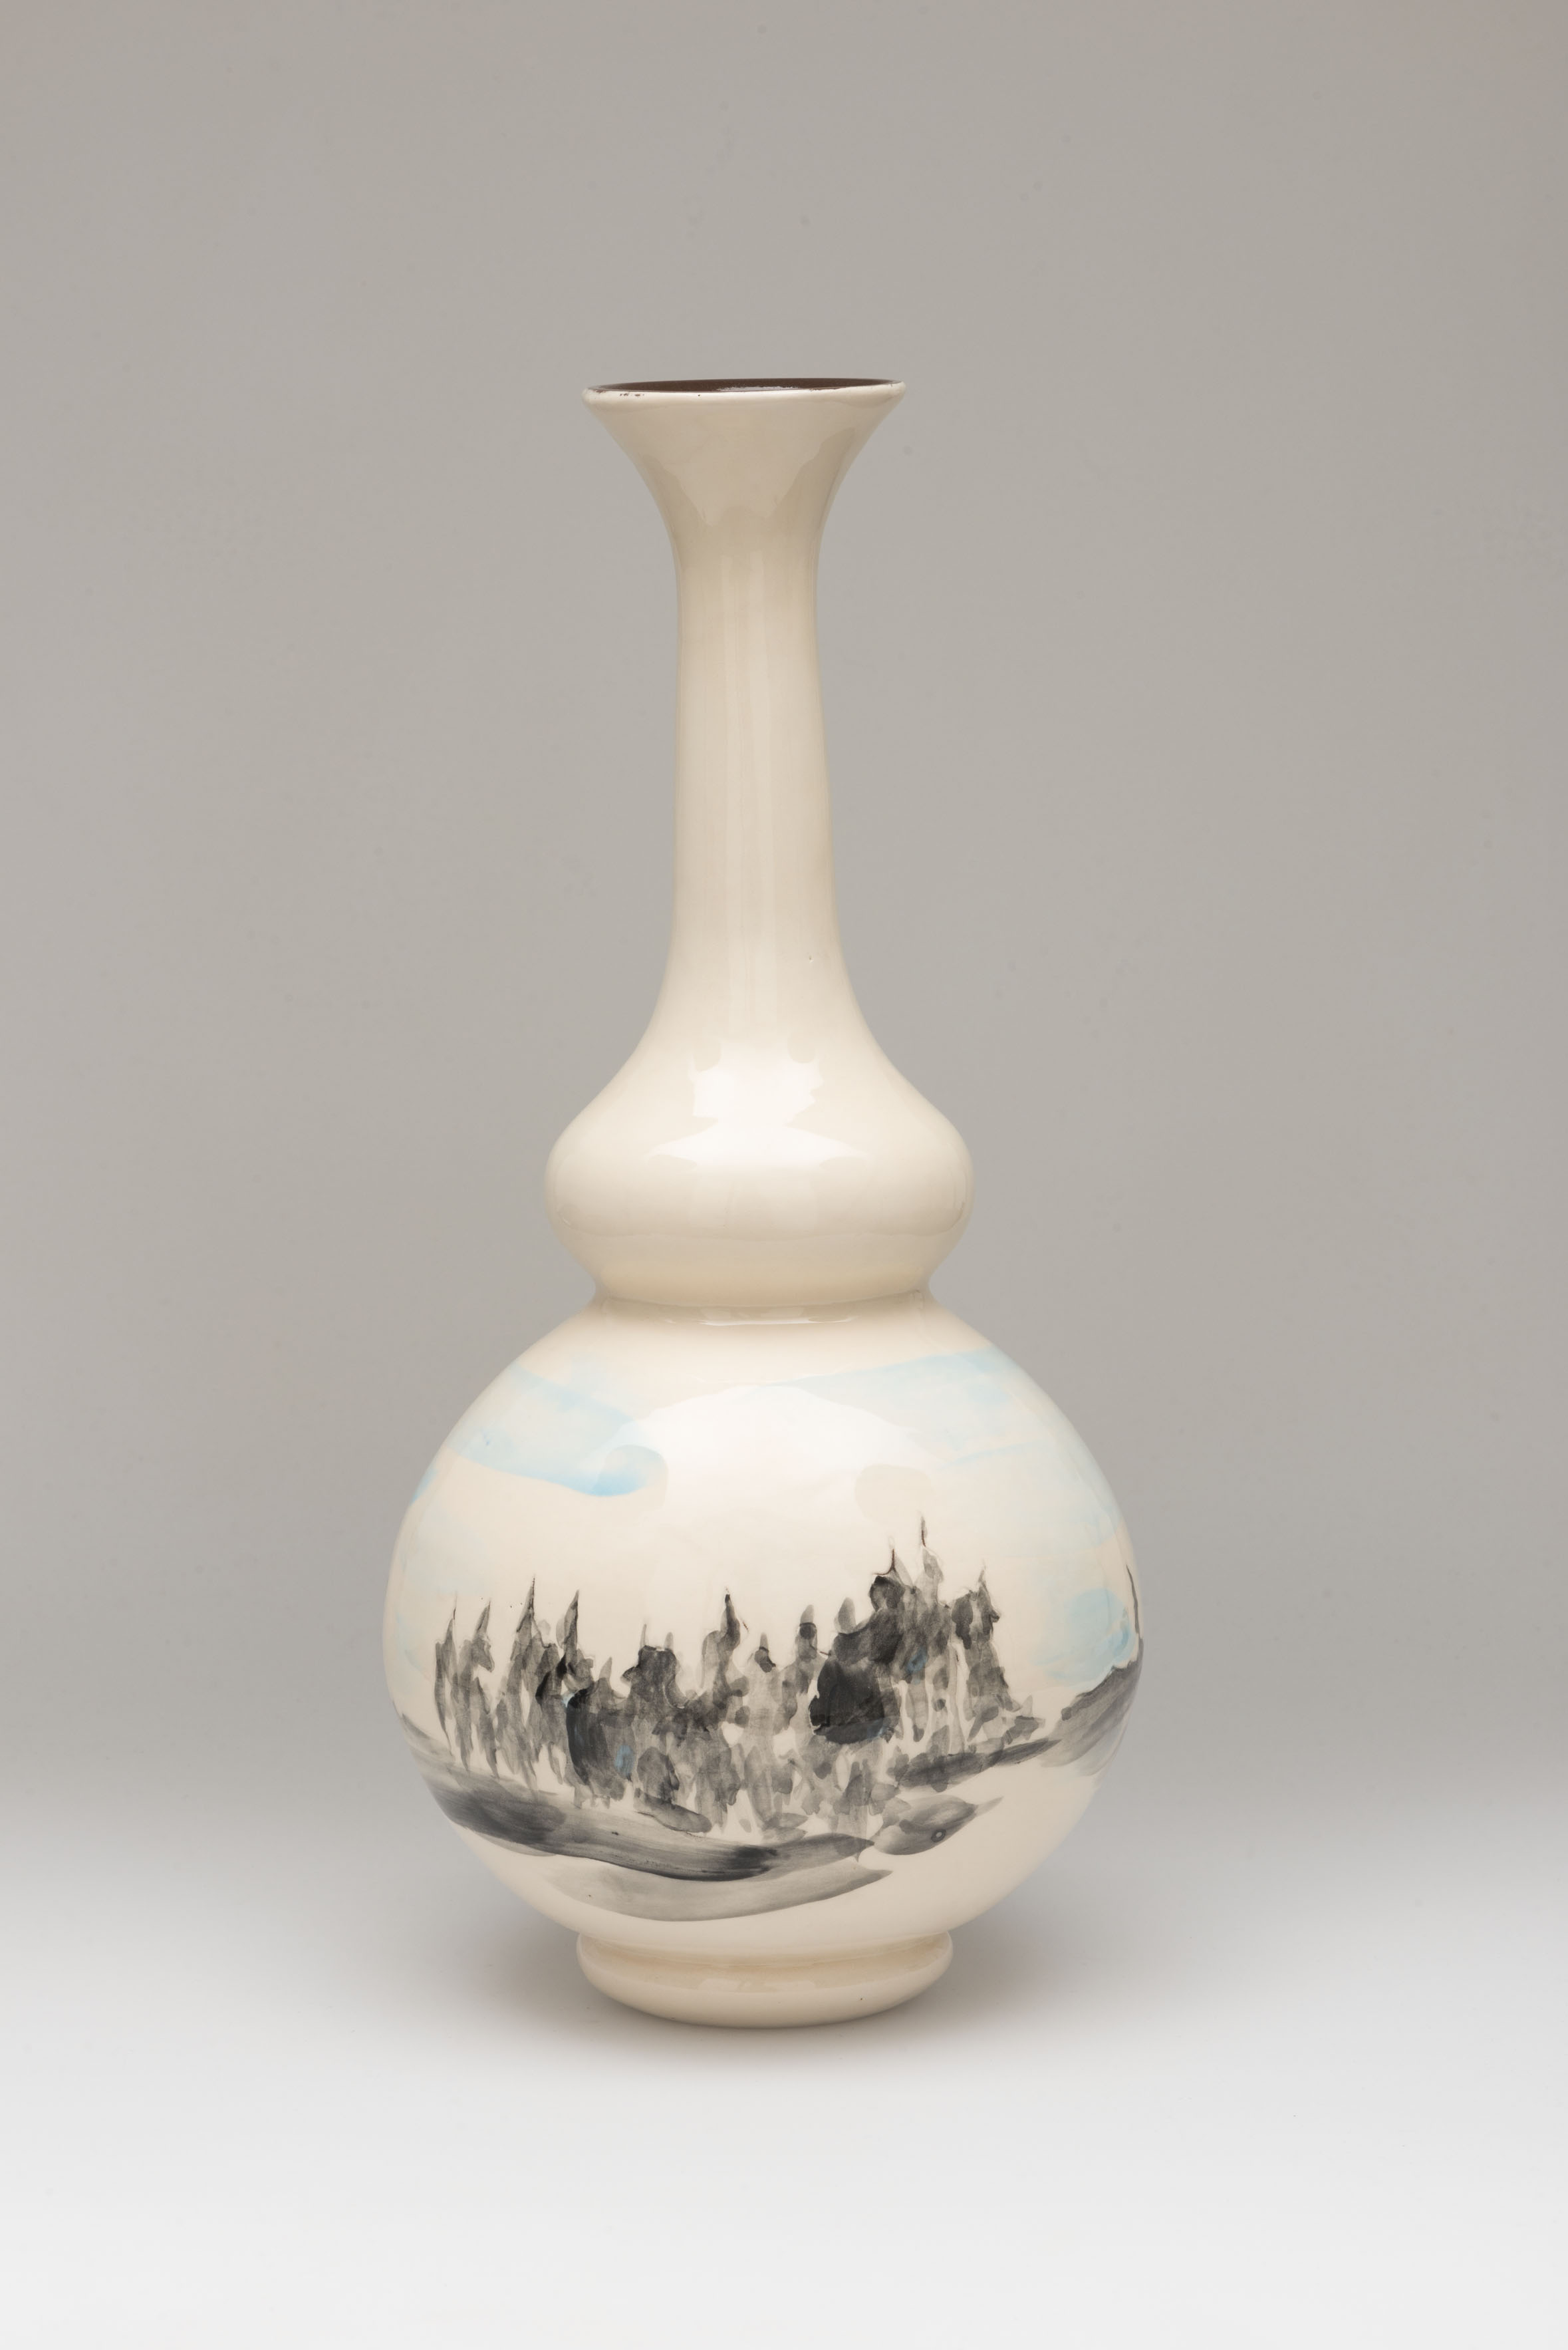 Flower Vase, ceramic, NL 2014